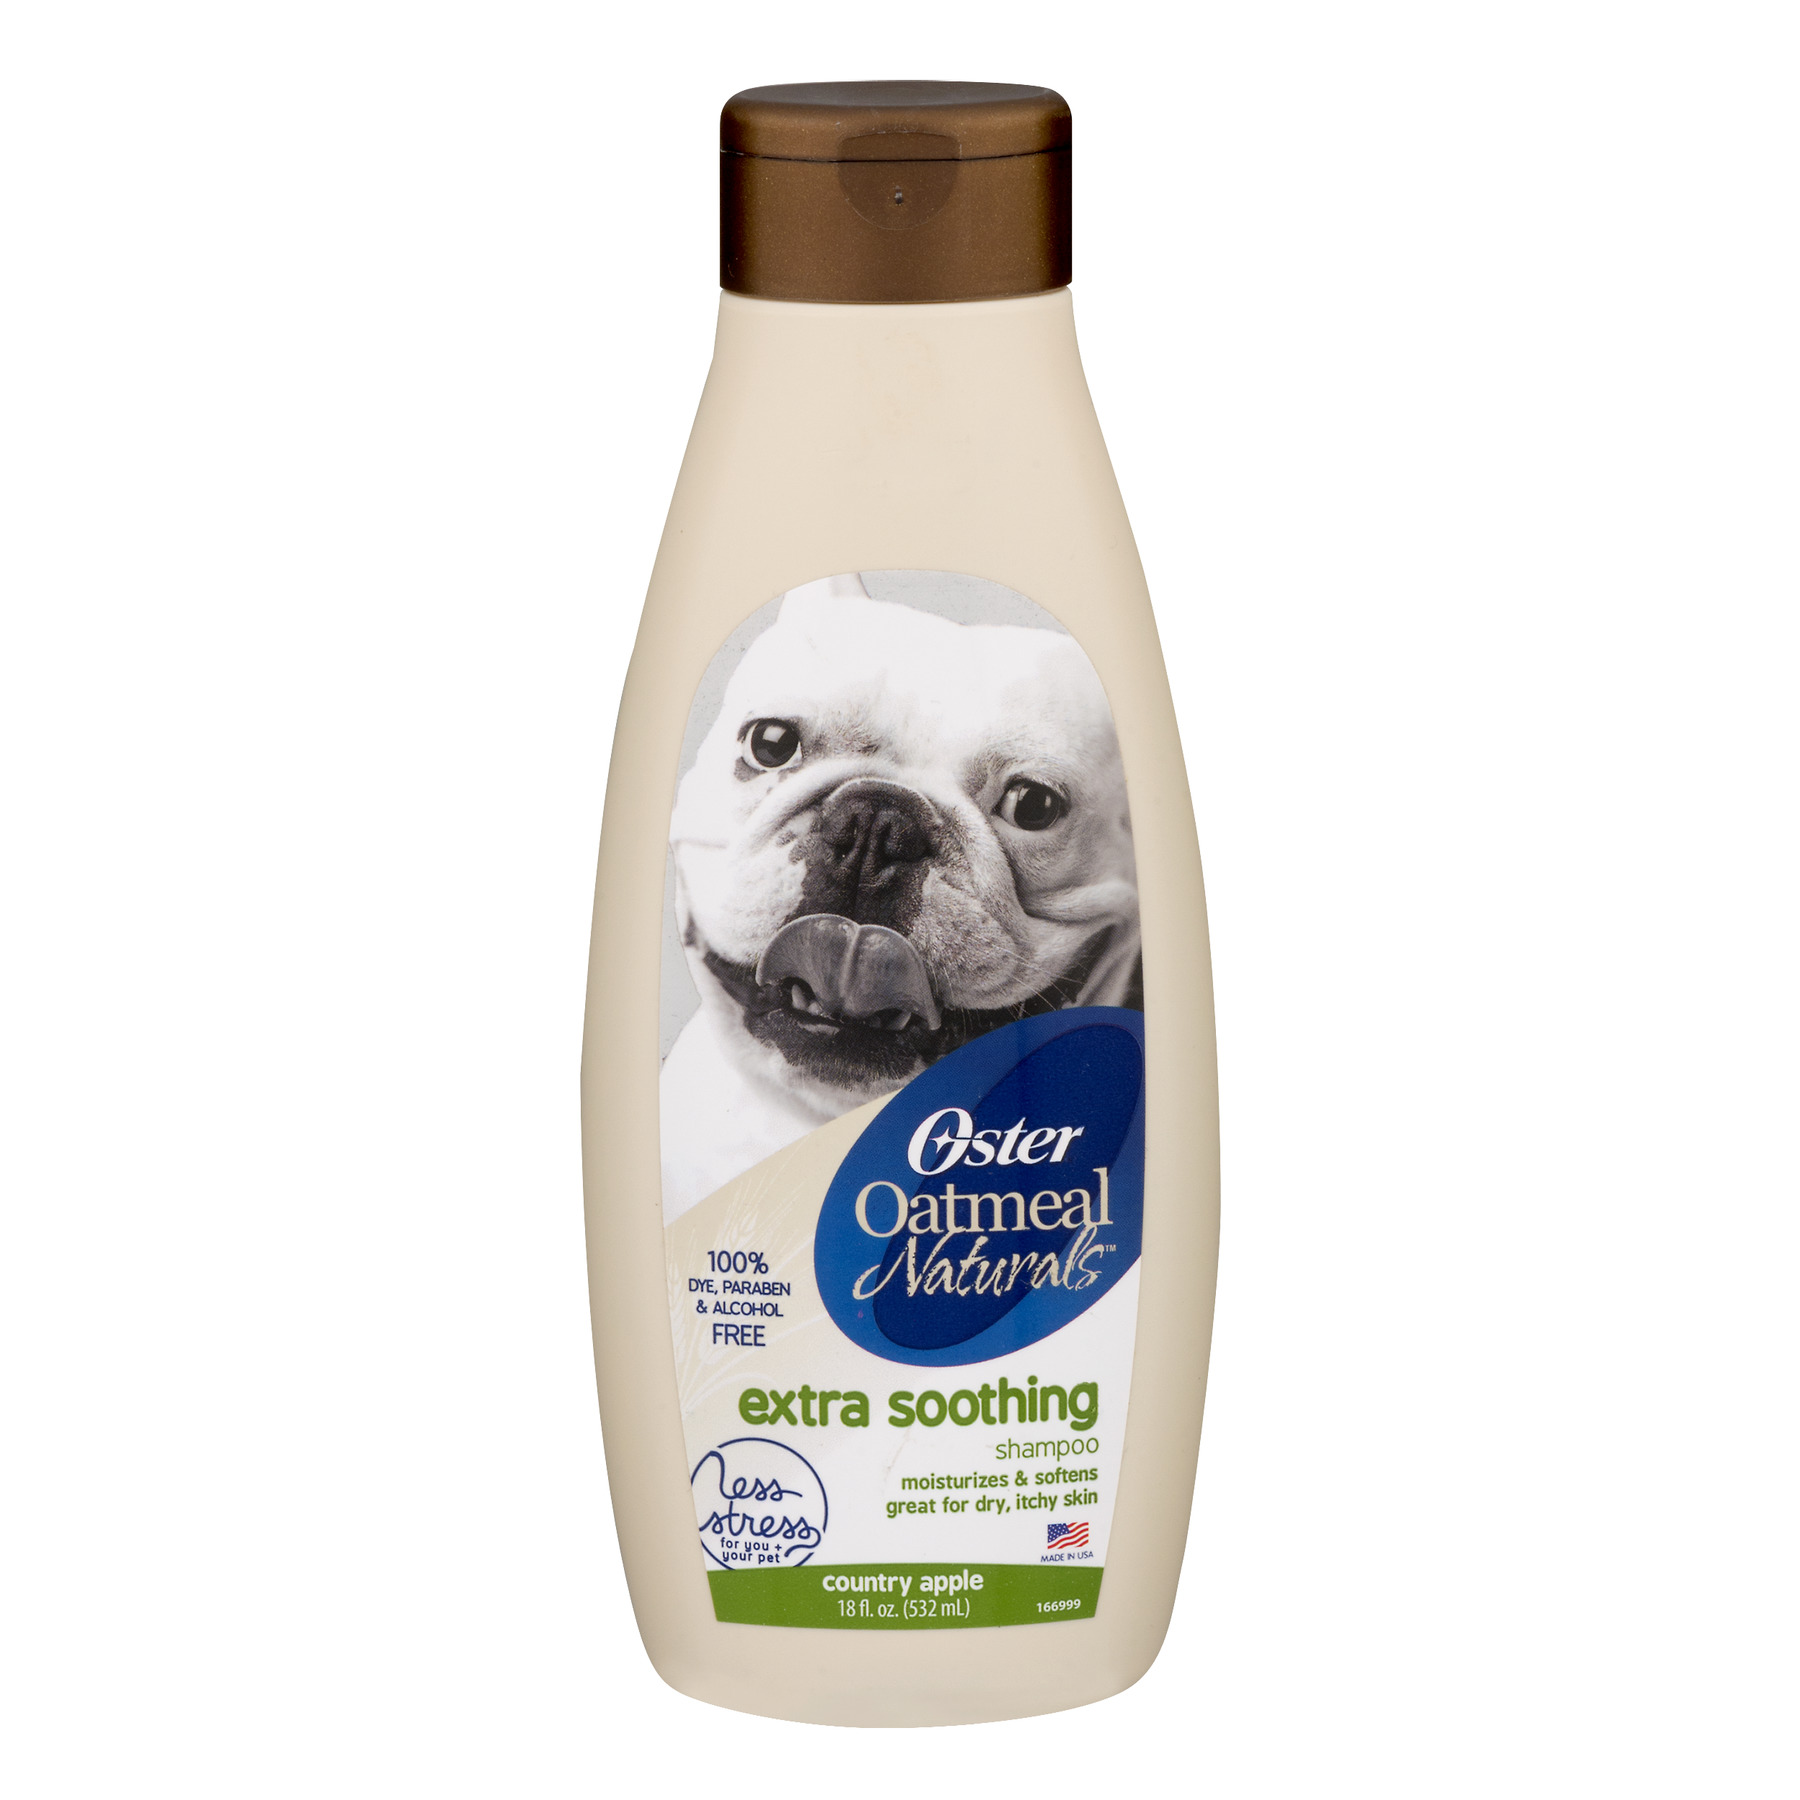 Oster Oatmeal Naturals Extra Soothing Dog Shampoo with Country Apple Scent, 18 oz.